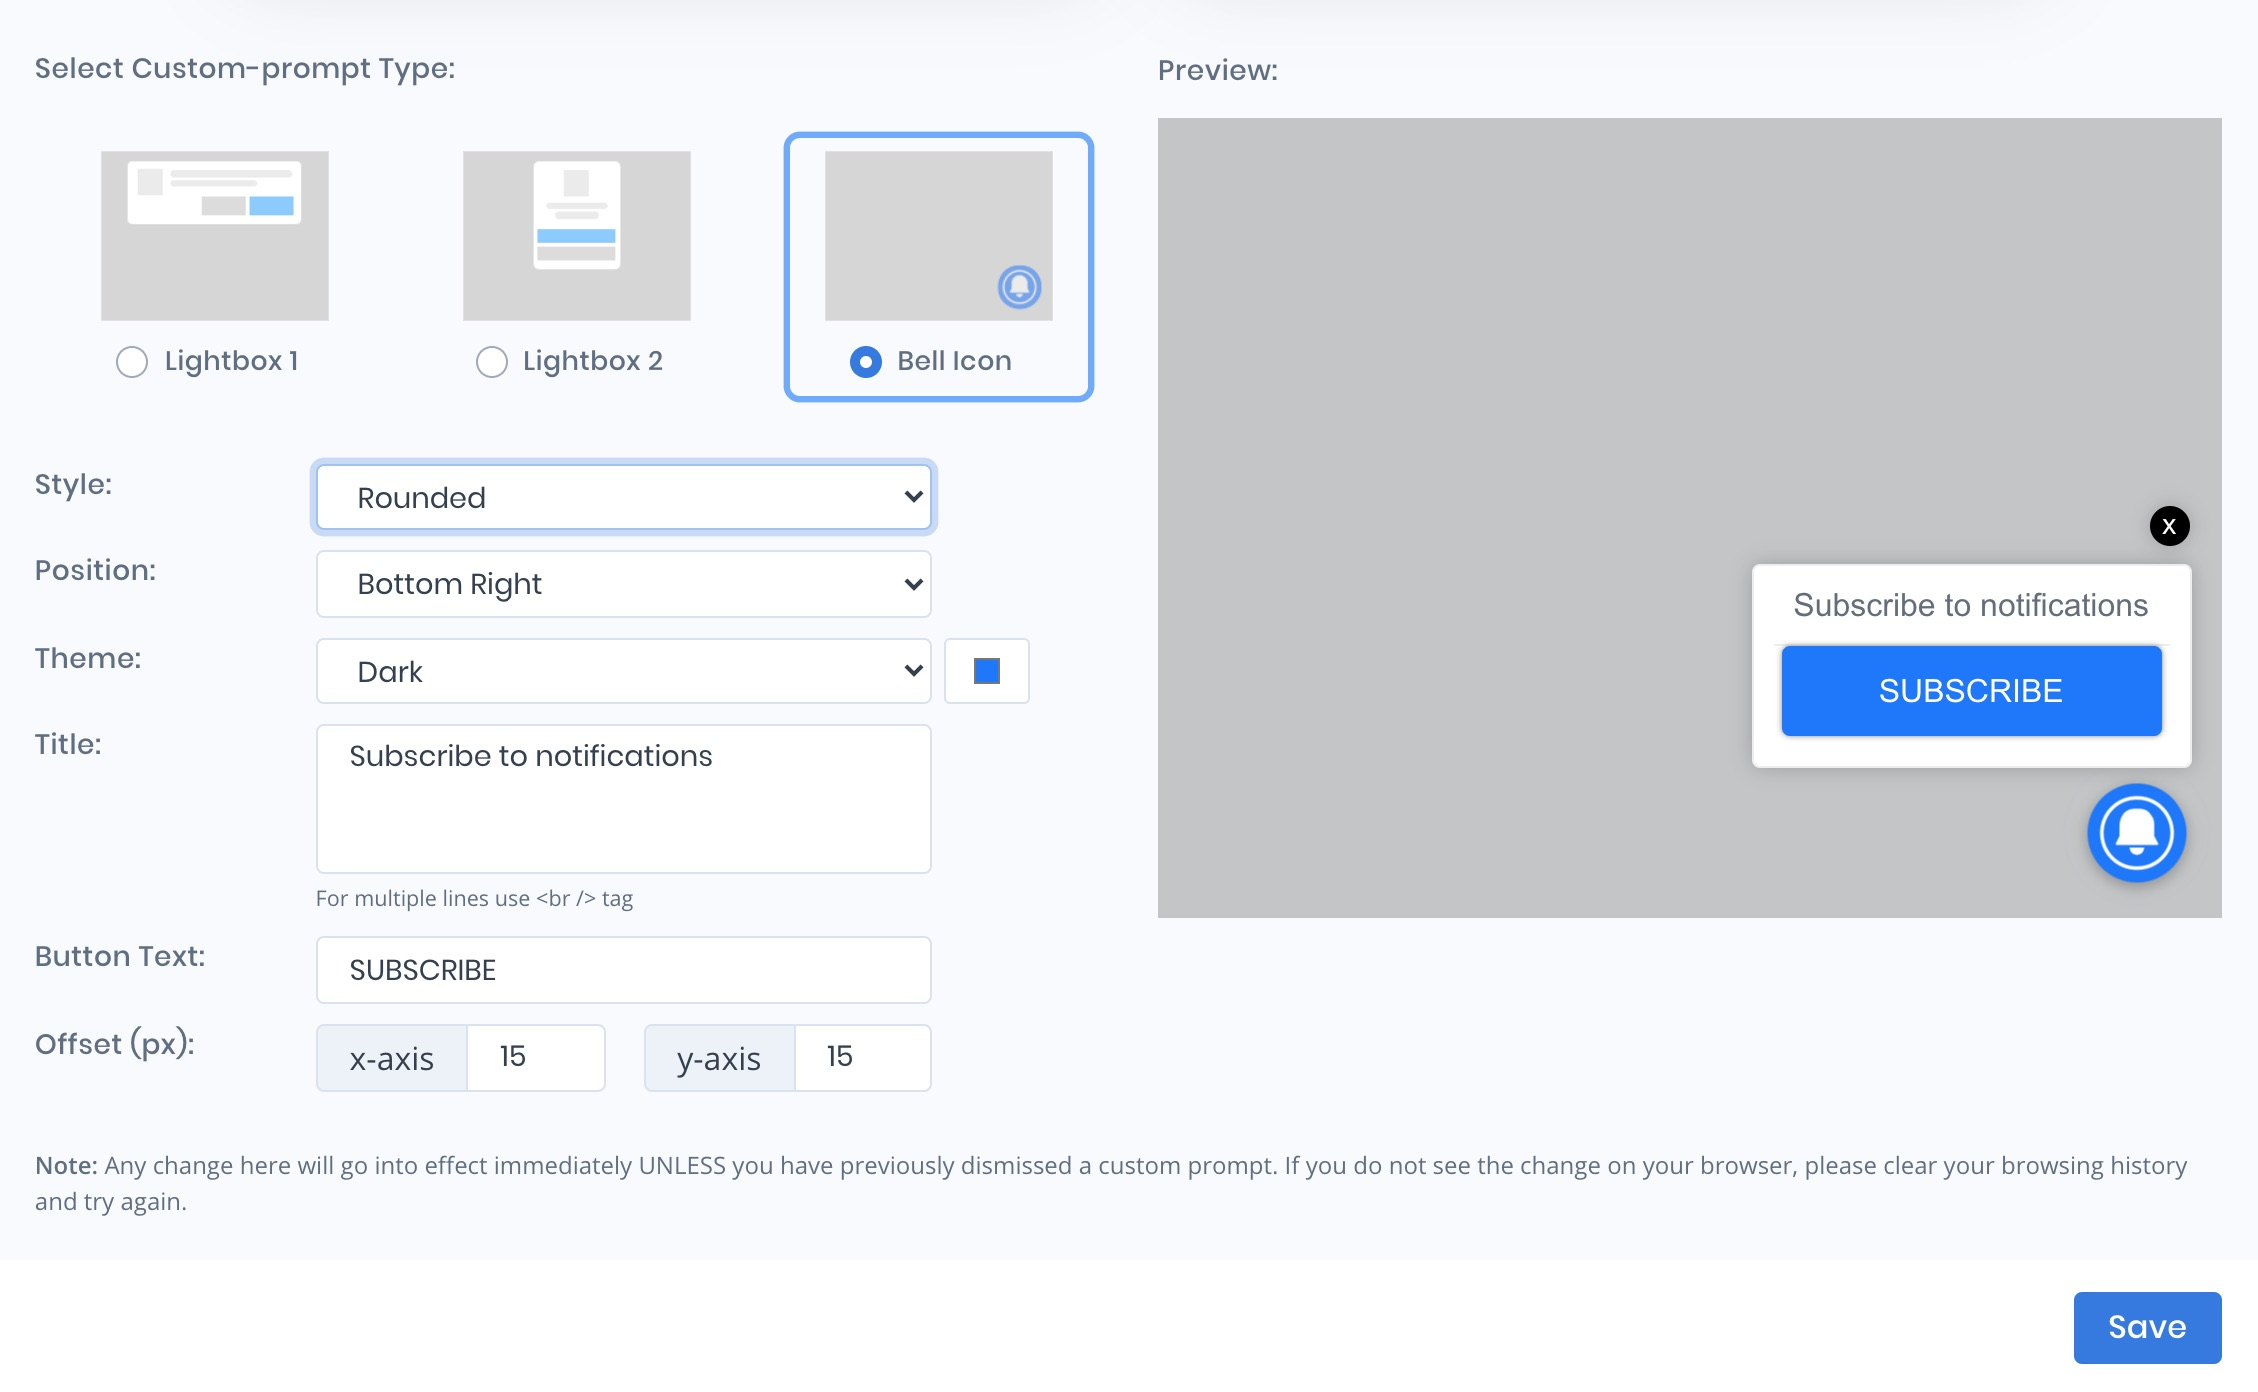 Enable elegant and highly customizable opt-in prompts for your site